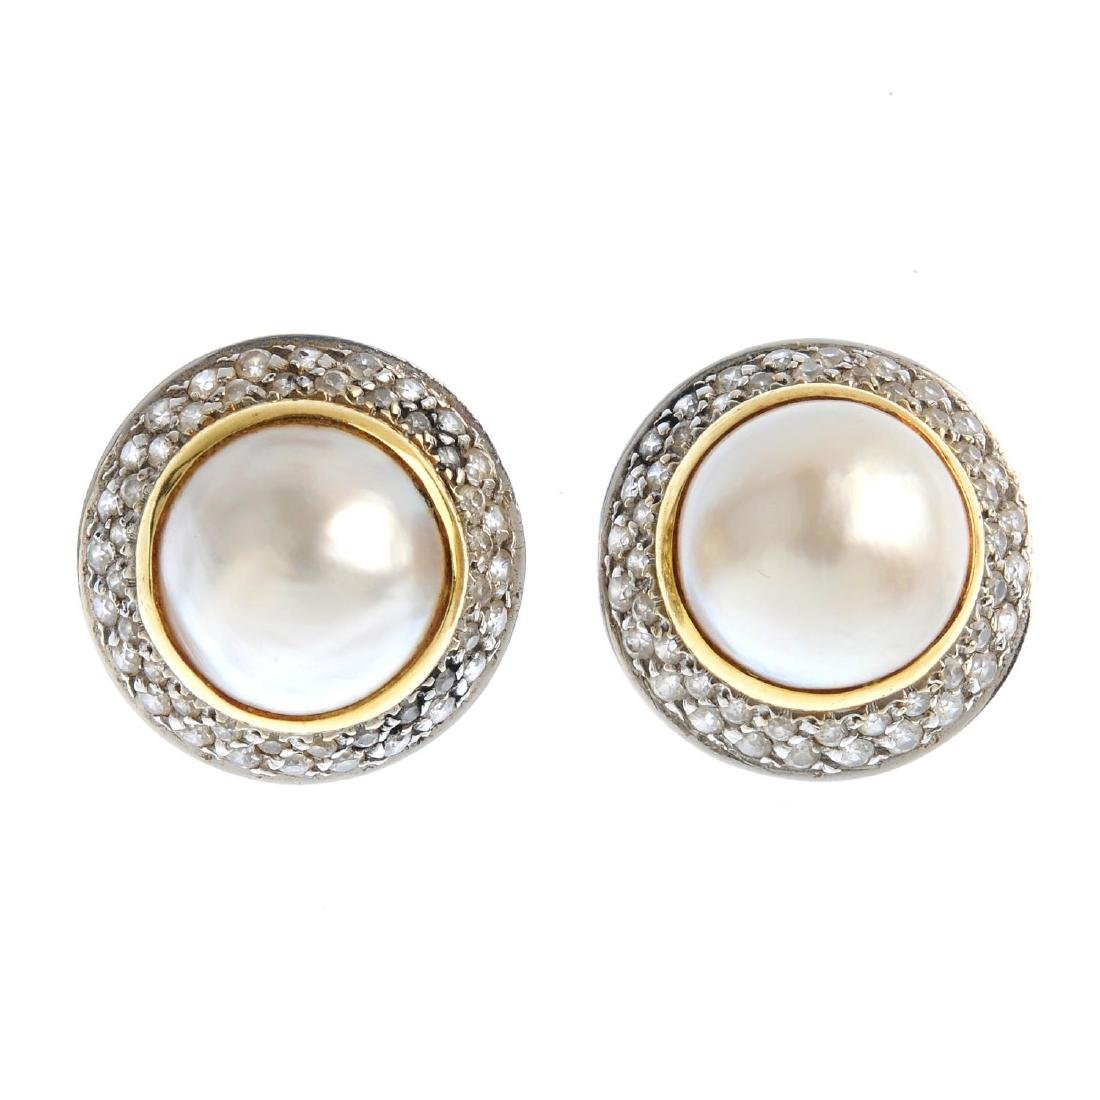 A pair of mabe pearl and cubic zirconia cluster